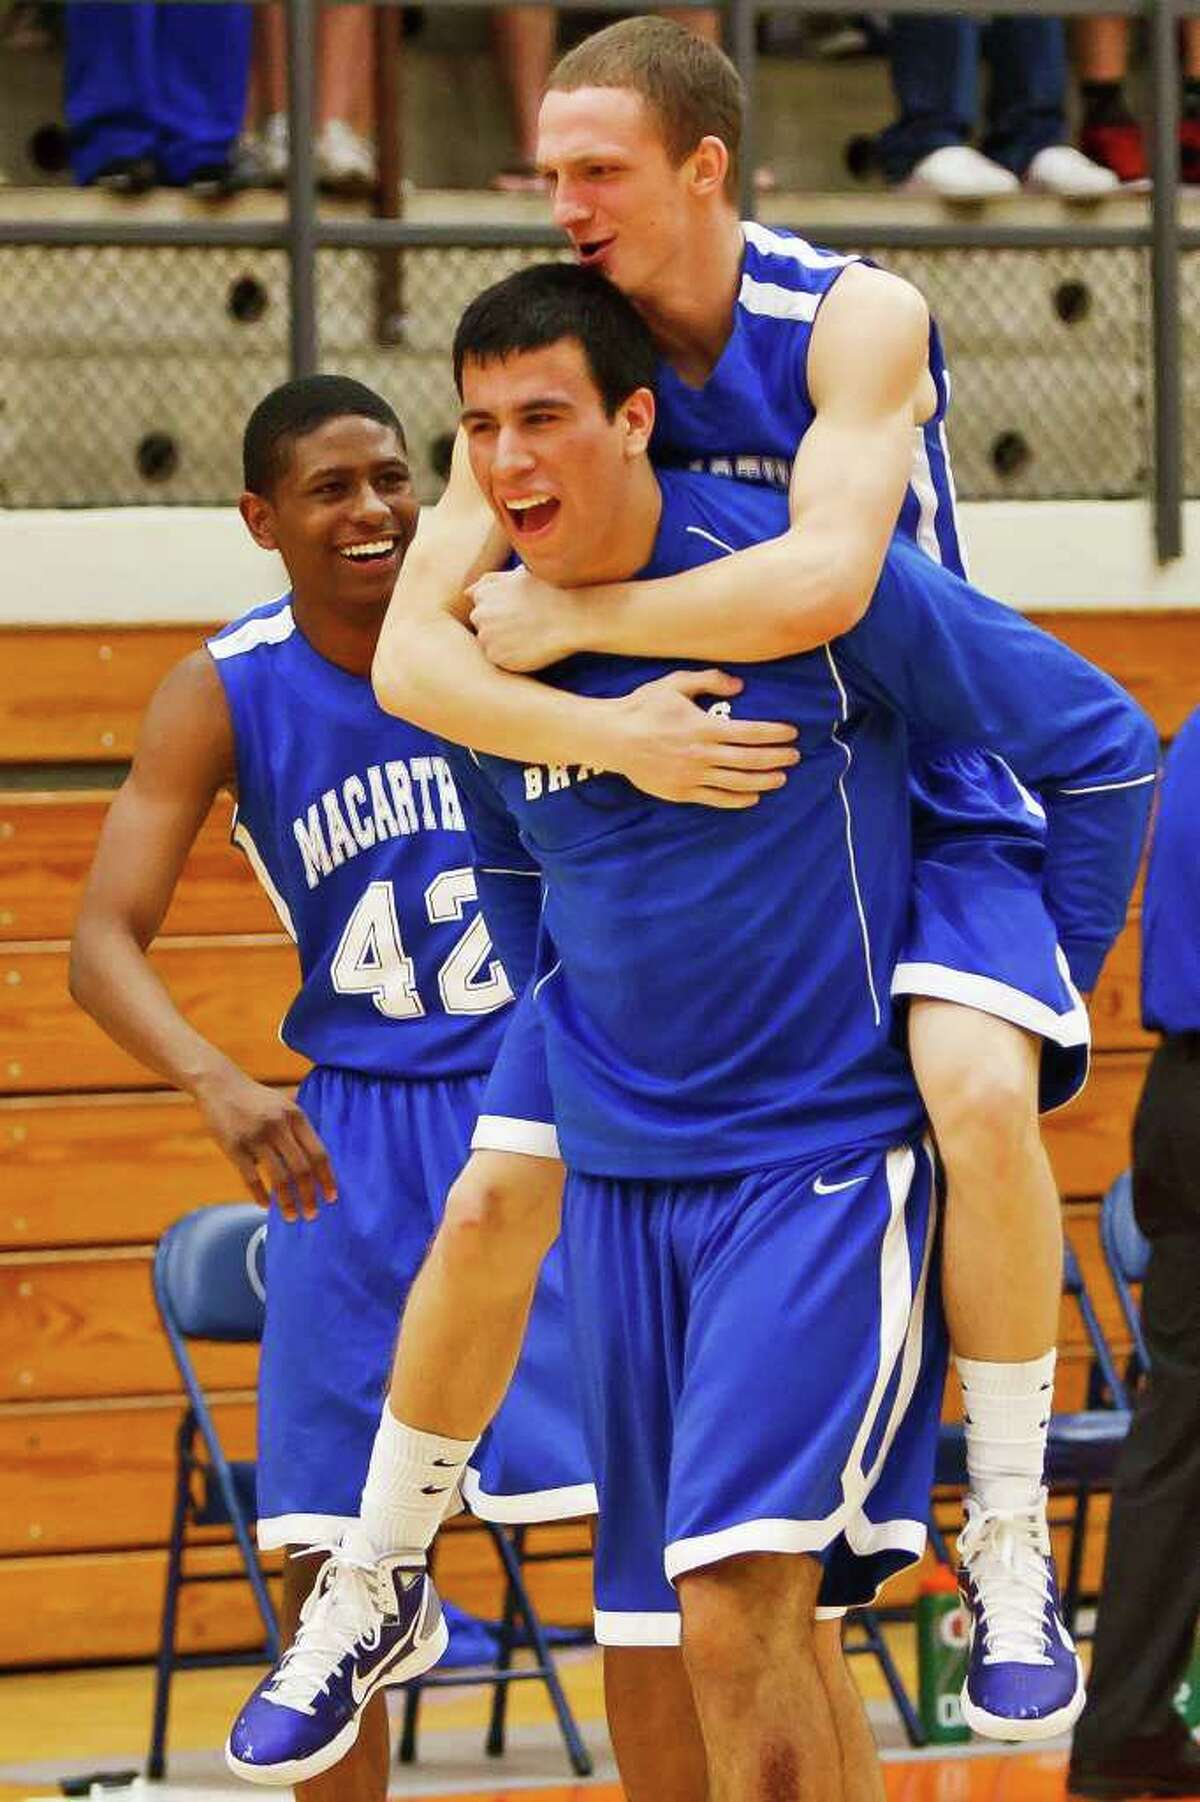 MacArthur's Jon Kaster jumps on the back of Jace Amaro as Alonzo Lewis looks on after the Brahmas' 56-54 second-round overtime victory over Judson at Paul Taylor Field House on Tuesday, Feb. 22, 2011.